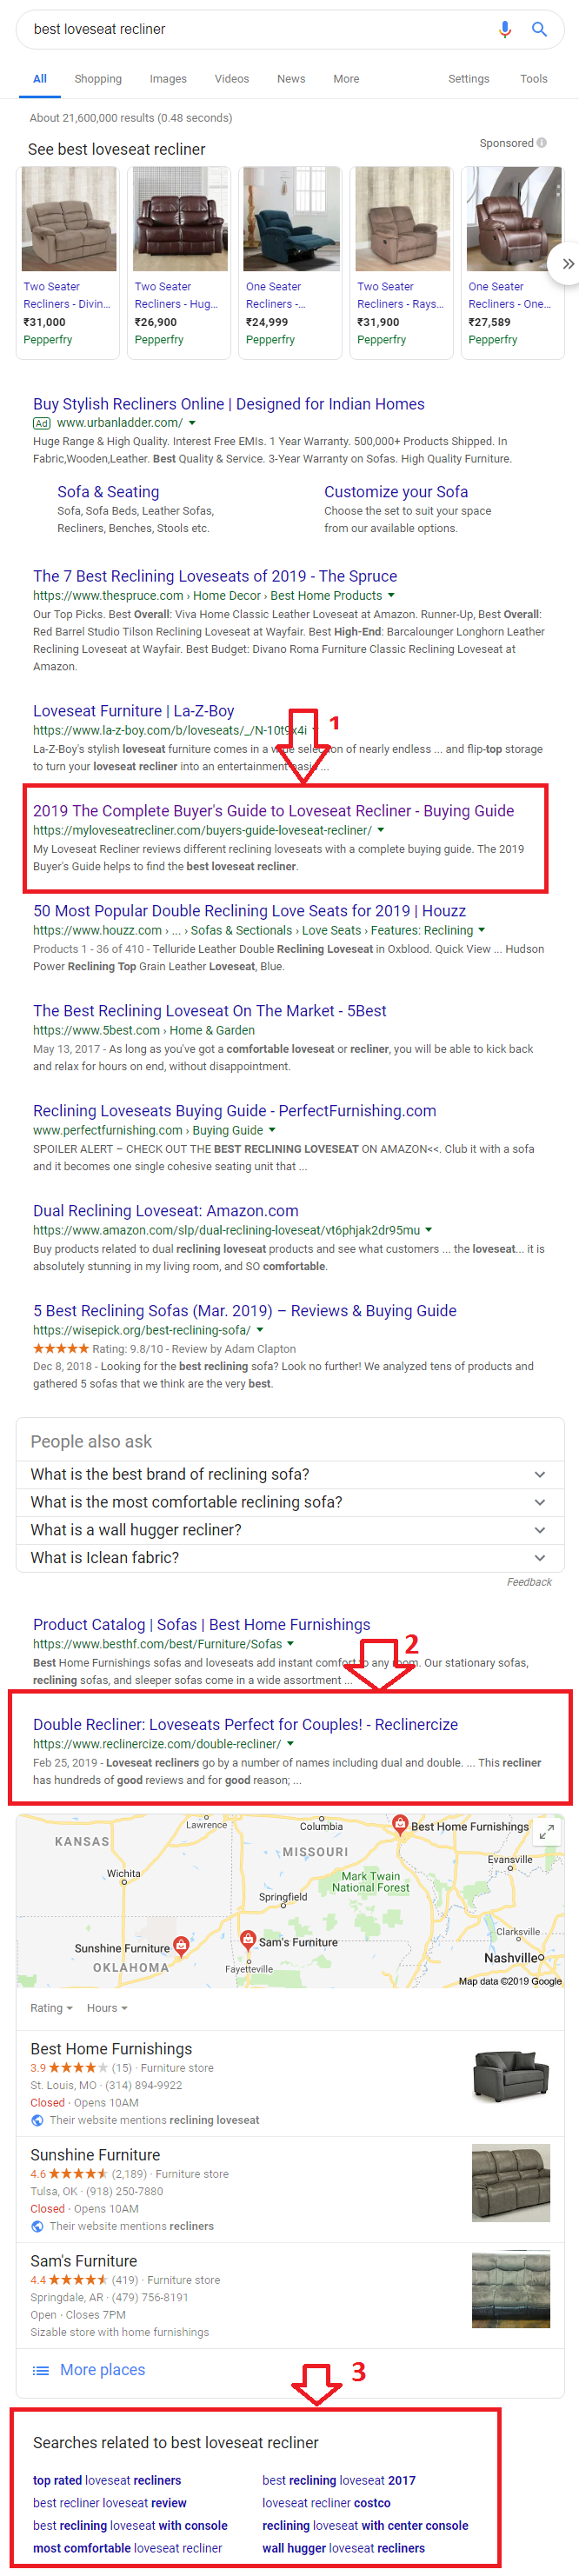 Amazon Associate Sites in Top 10-Keyword Research